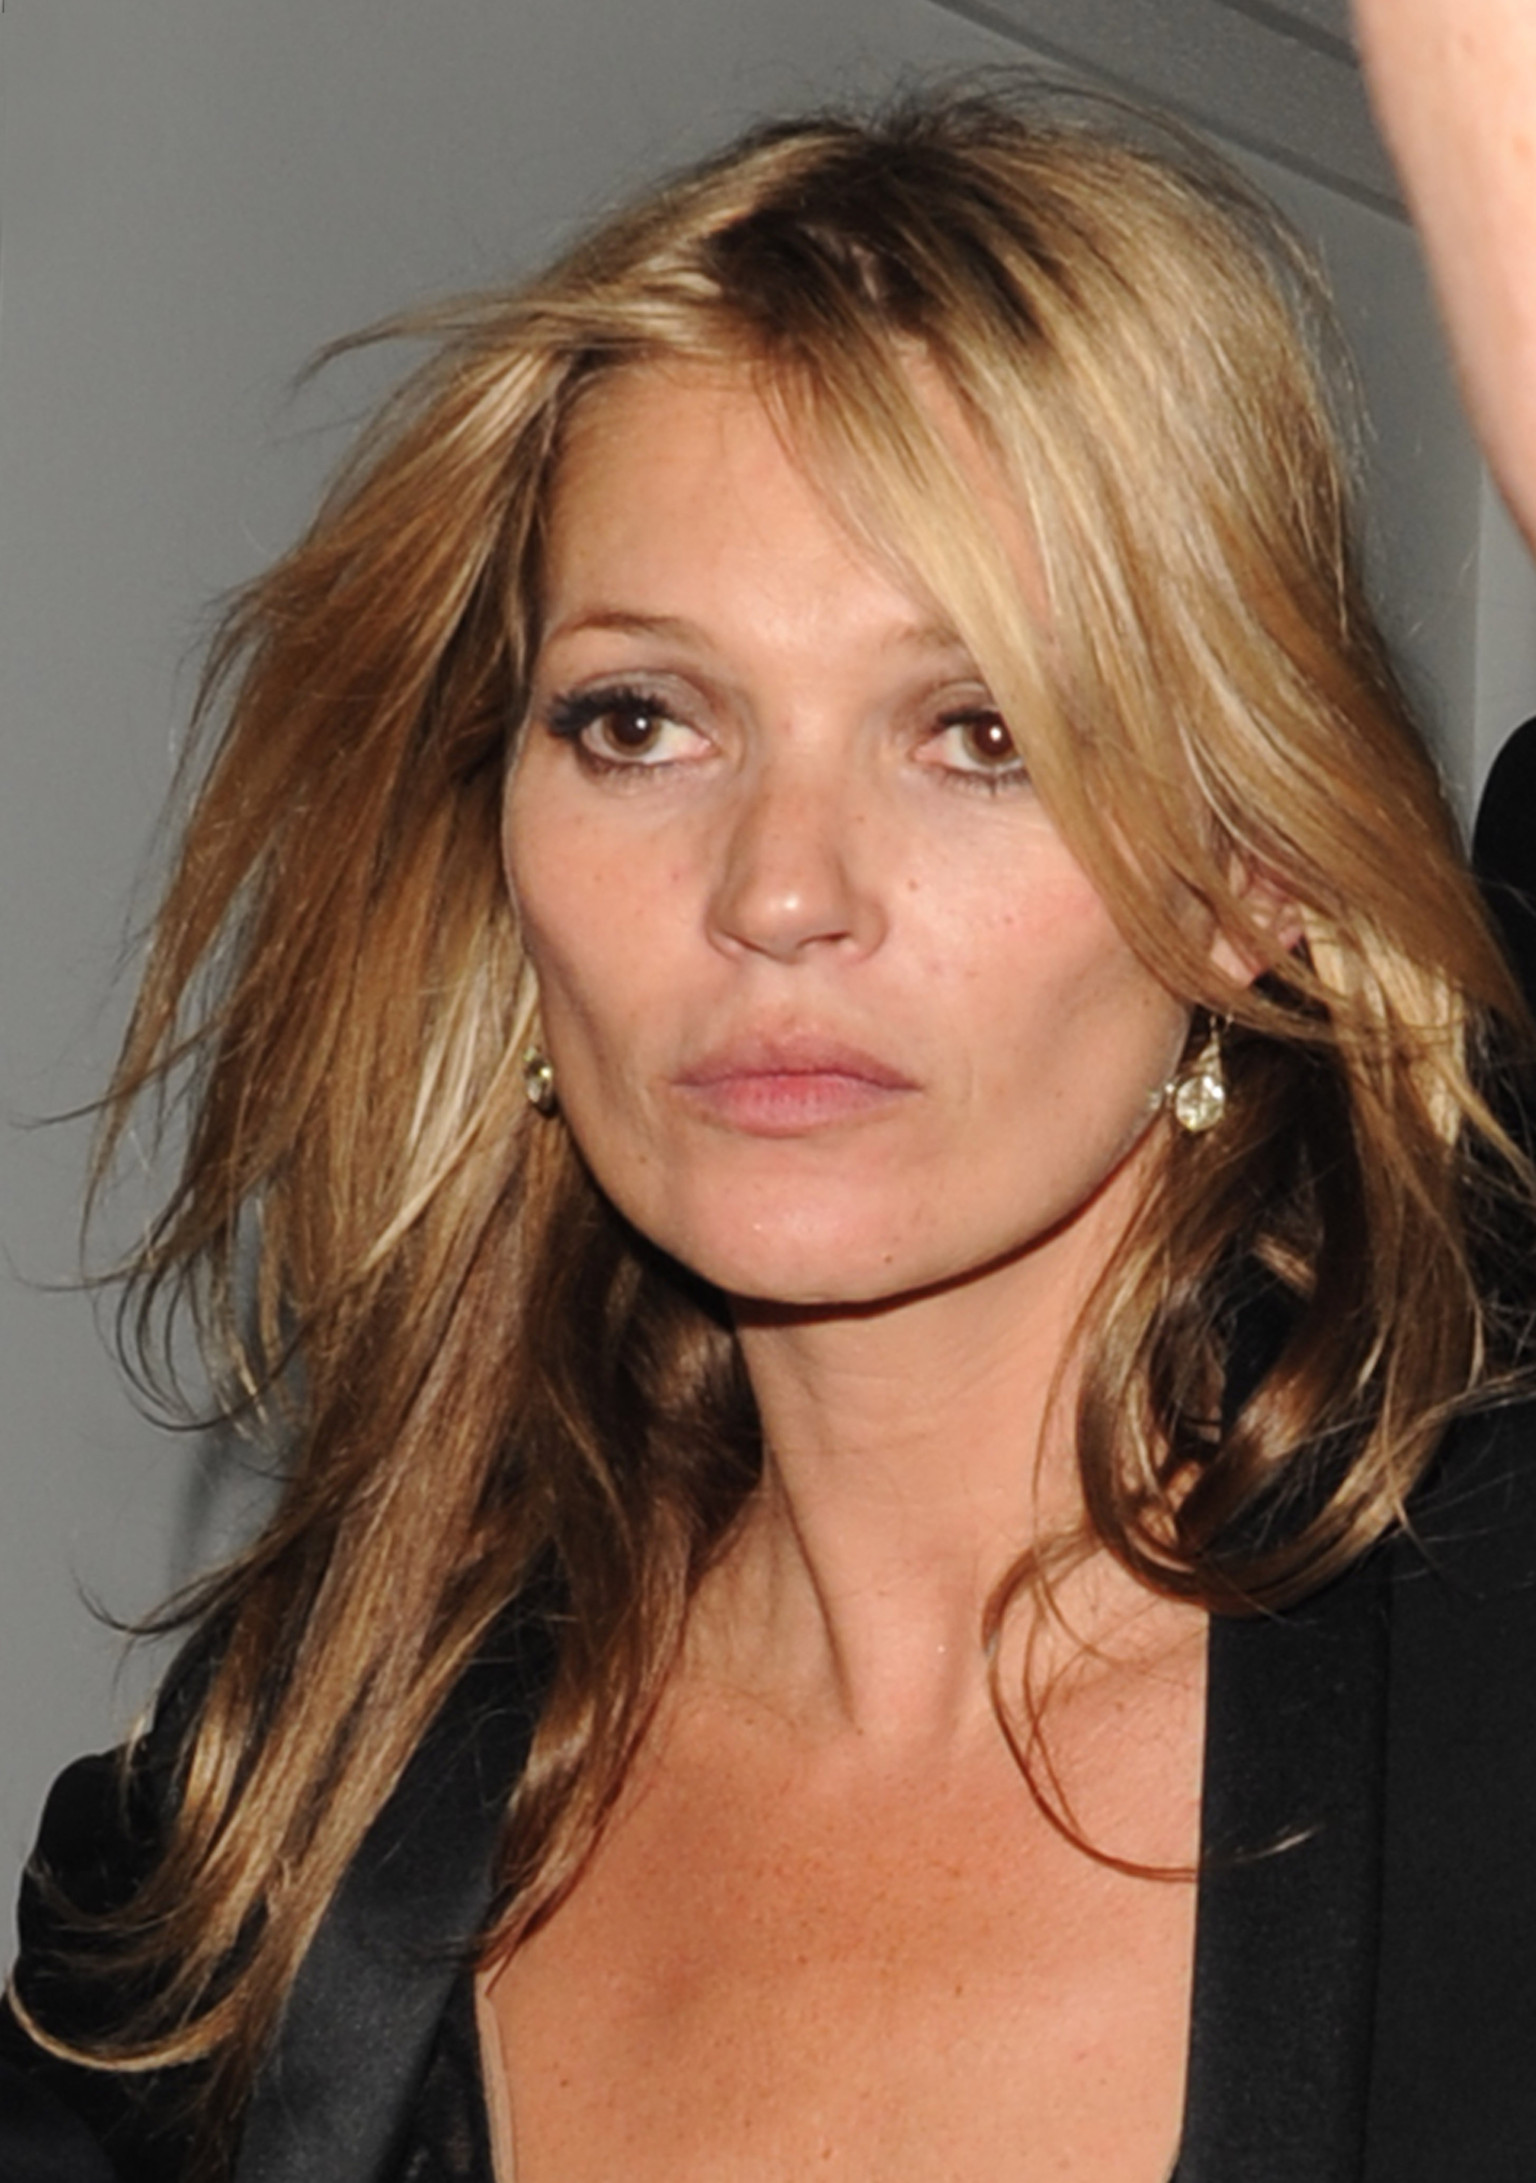 Kate Moss Is The Queen Of Cool On 37th Vogue Uk Cover: Kate Moss Denies Doing Heroin And Being Anorexic